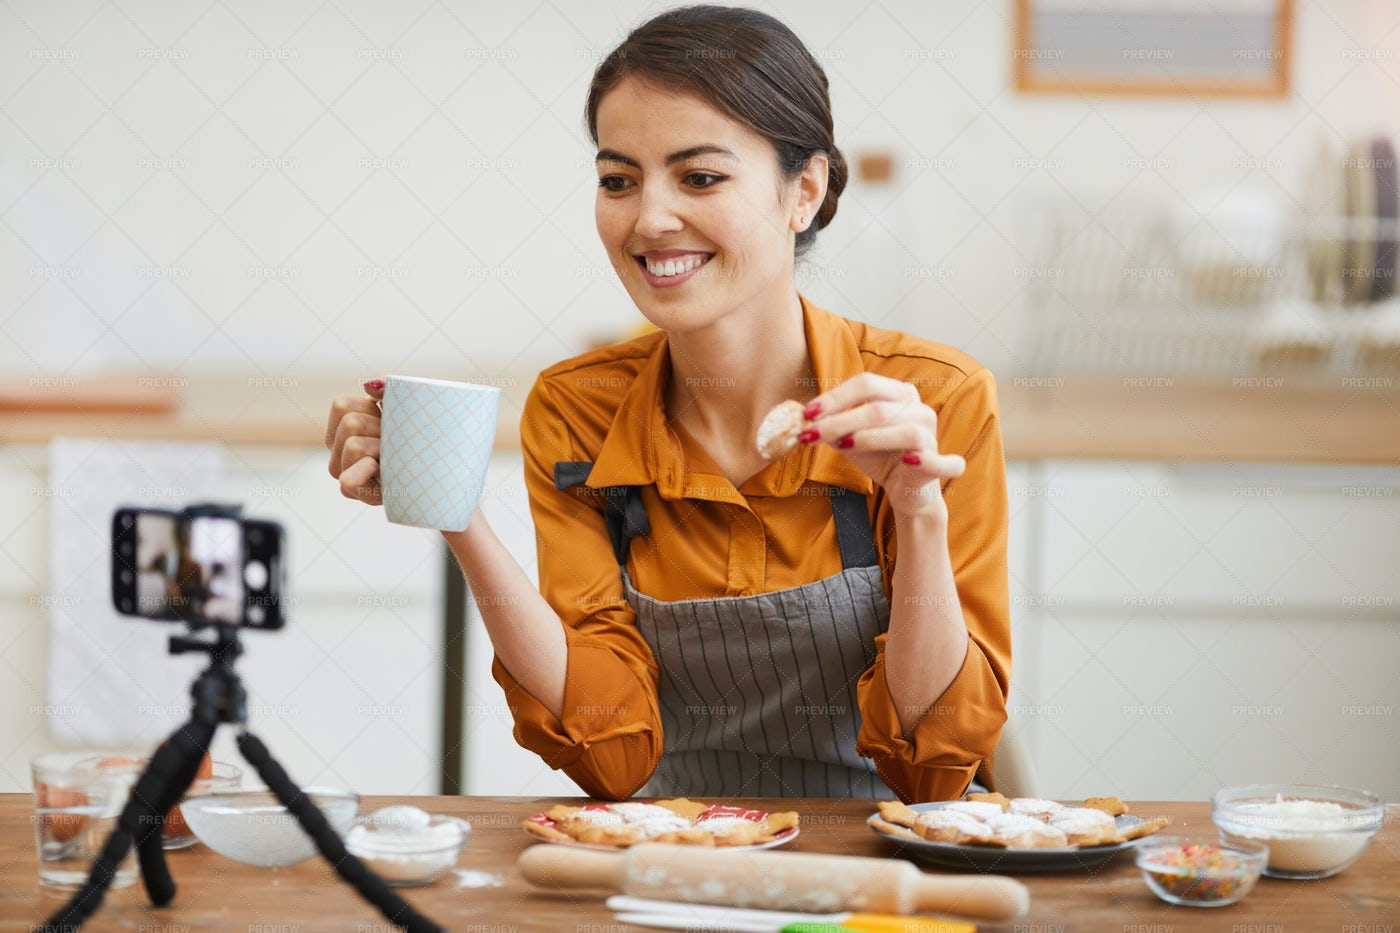 Young Woman Filming In Cozy Kitchen: Stock Photos